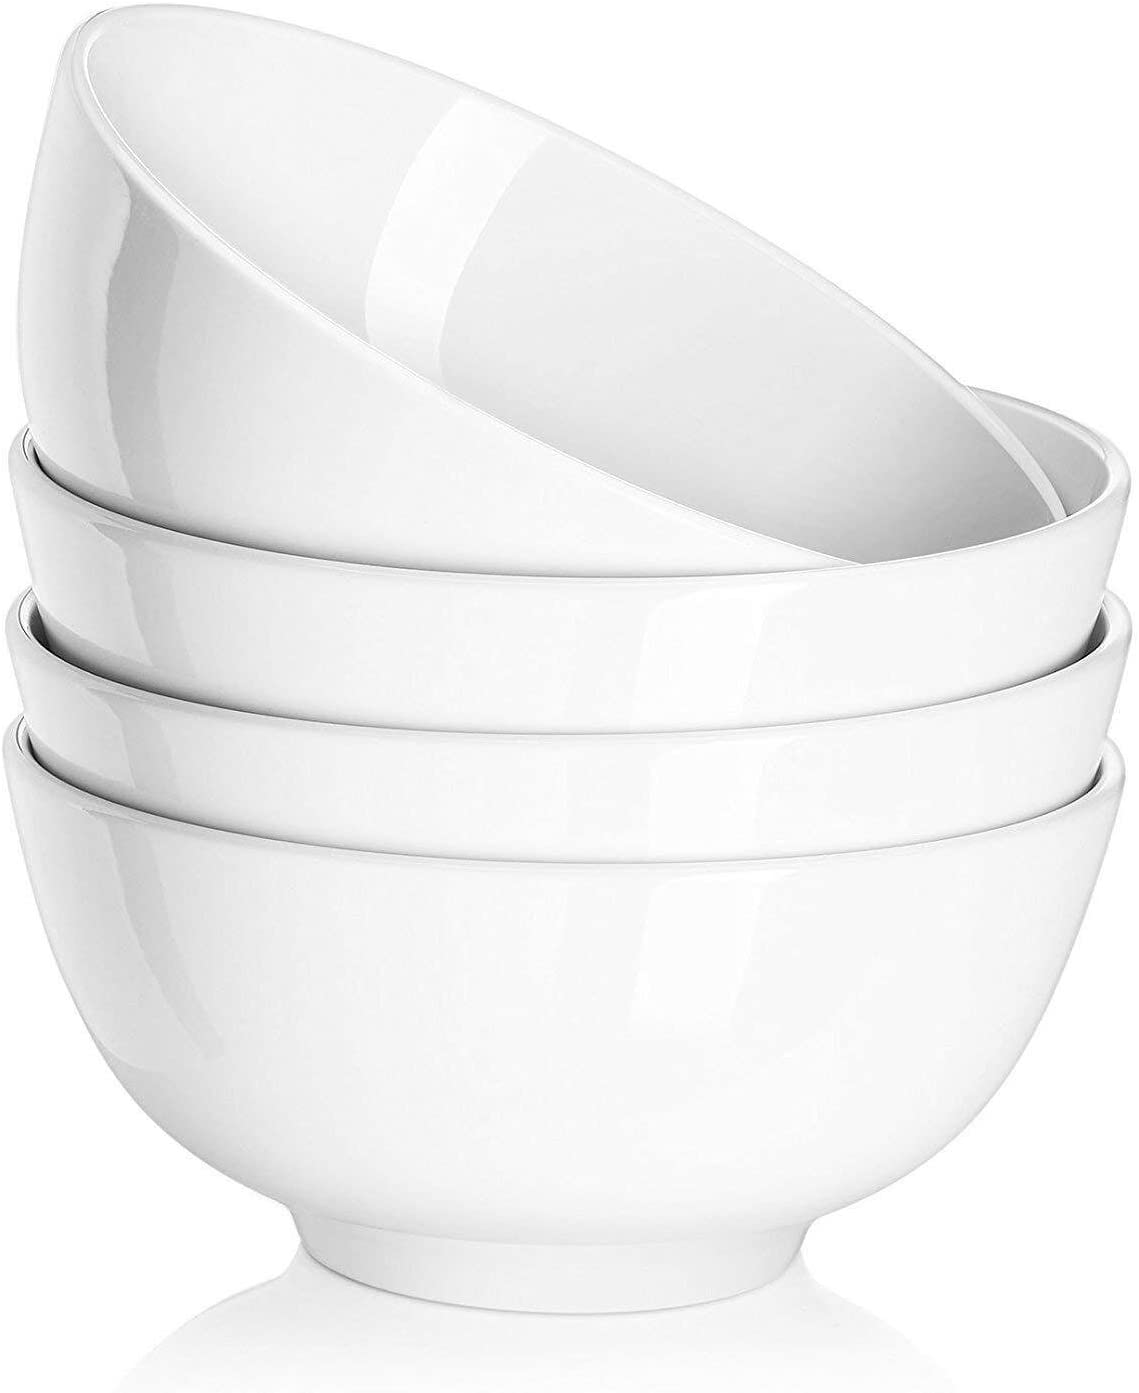 DOWAN 22 Ounces Porcelain Soup Bowls, Cereal Bowls, 4 Packs, White